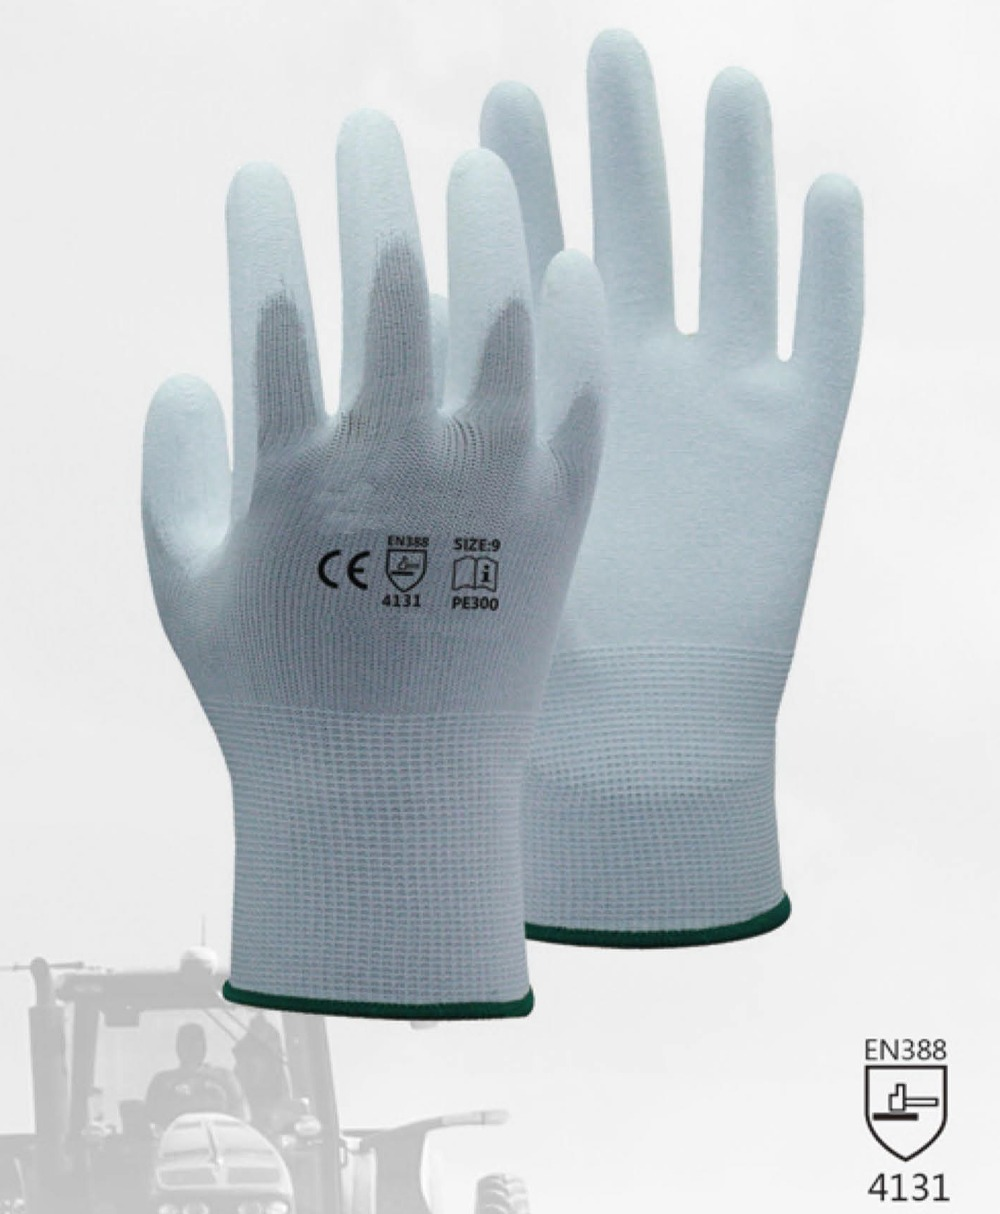 ESD Safety Gloves Anti-static Glove White Nylon Glove With PU Polyurethane Palm Dipped Anti Static Work Glove